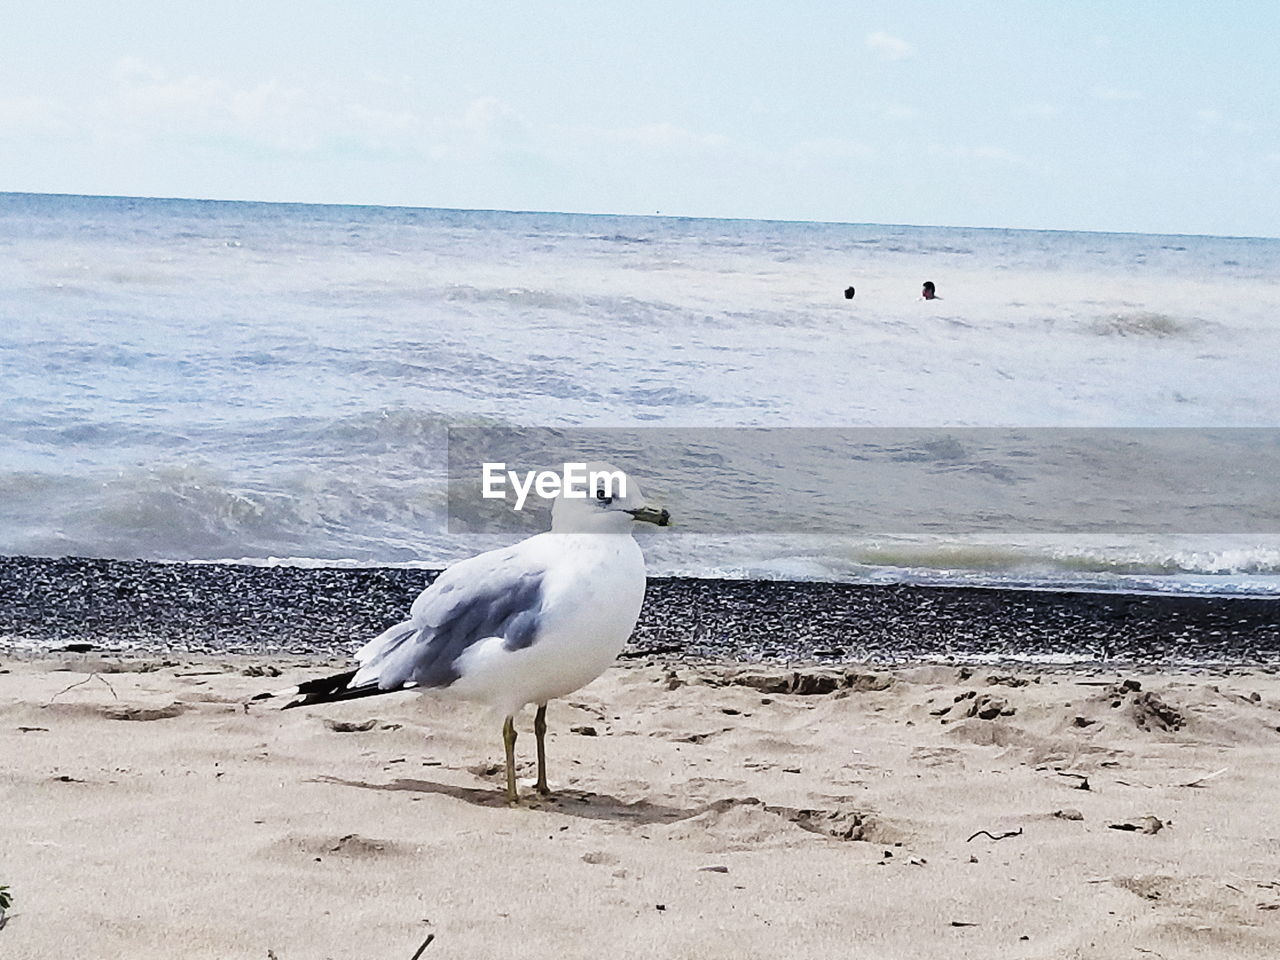 sea, beach, horizon over water, water, bird, sand, nature, one animal, shore, beauty in nature, animal themes, animals in the wild, sky, day, outdoors, scenics, seagull, no people, wave